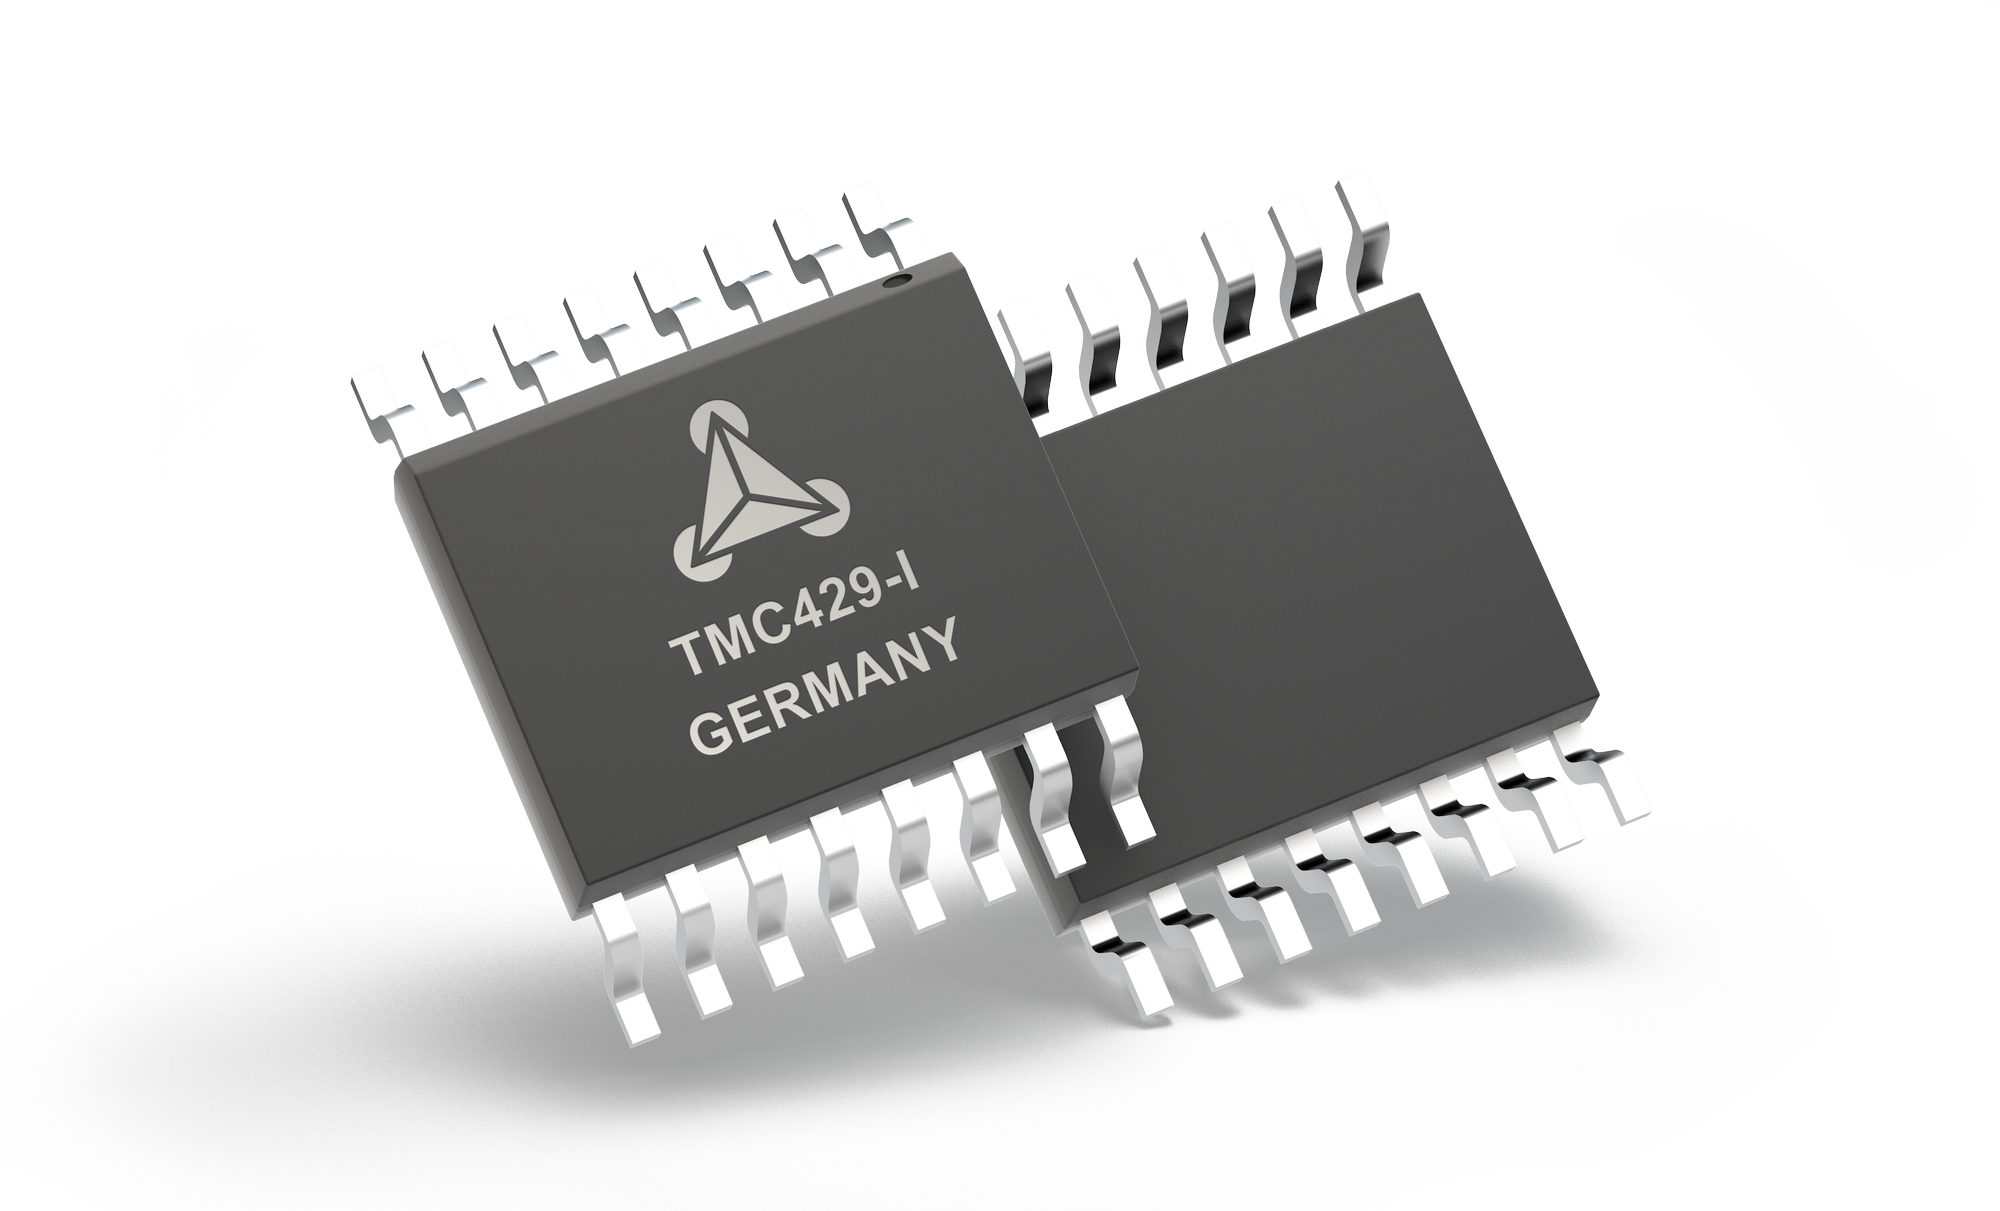 TMC429-I(Motion and Interface Controller ICs)图片